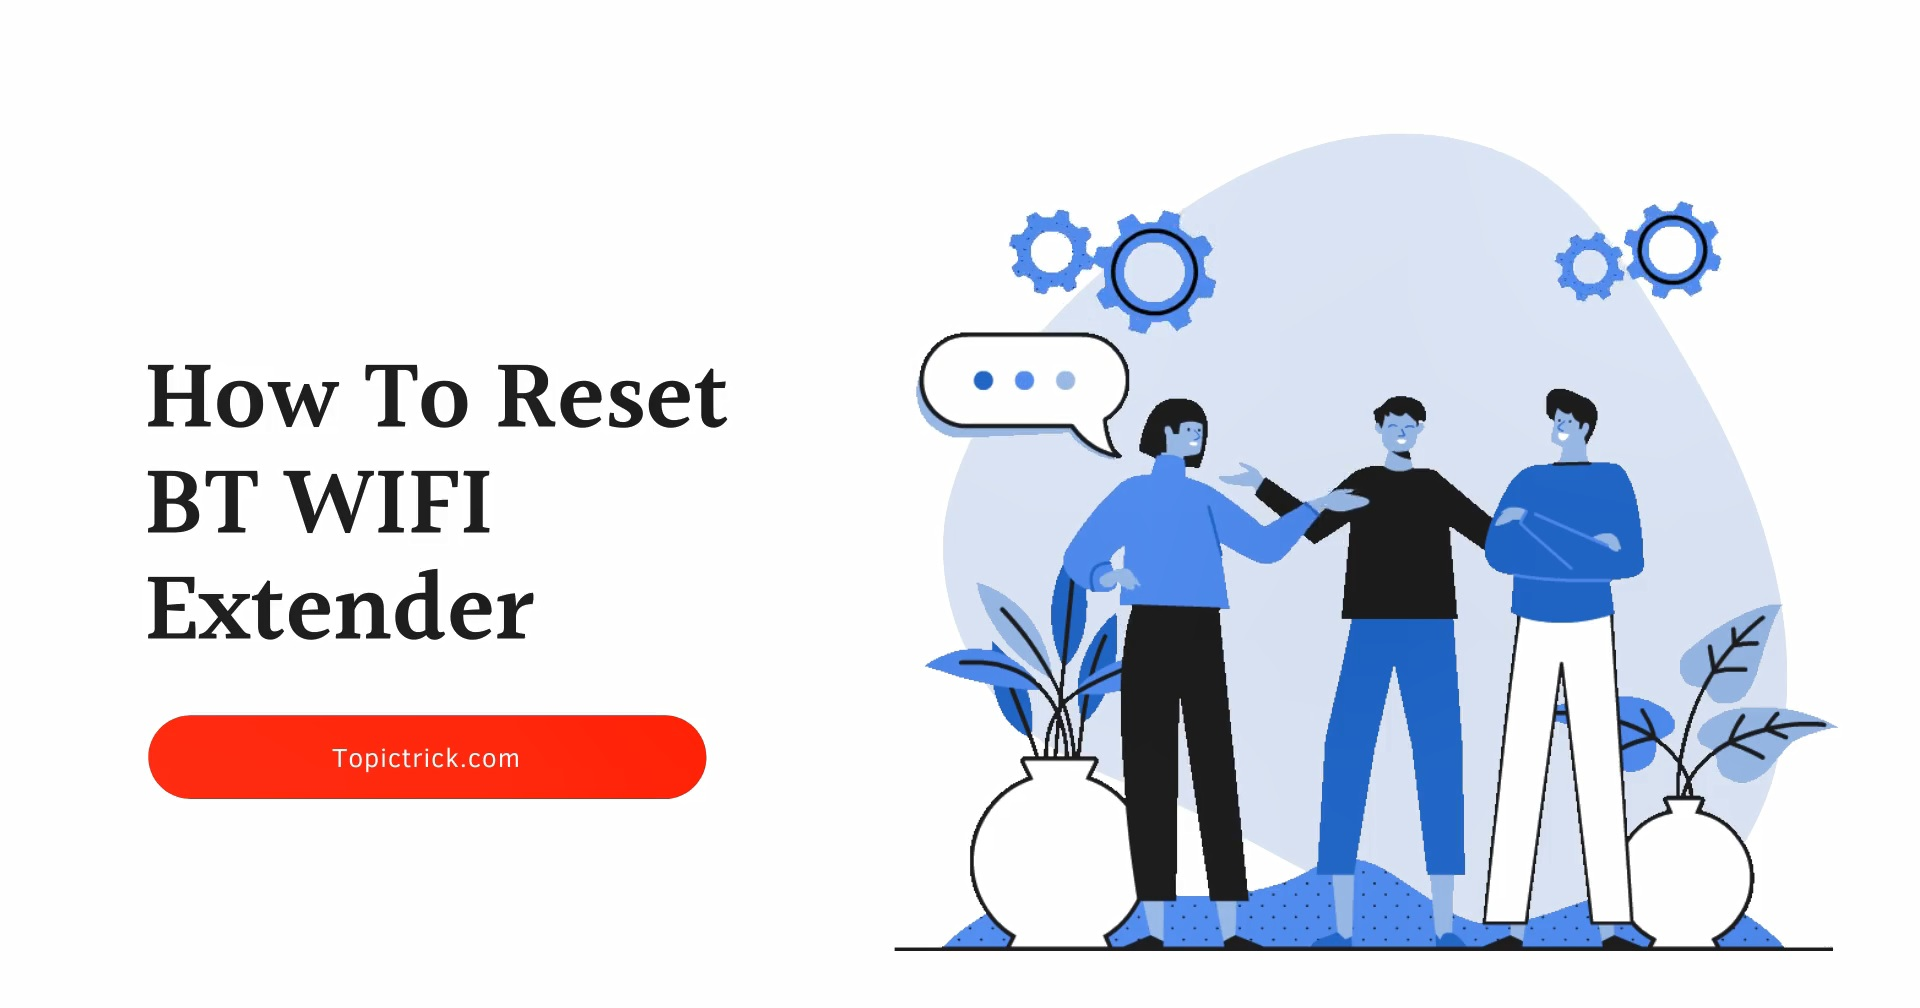 How to reset BT wifi booster